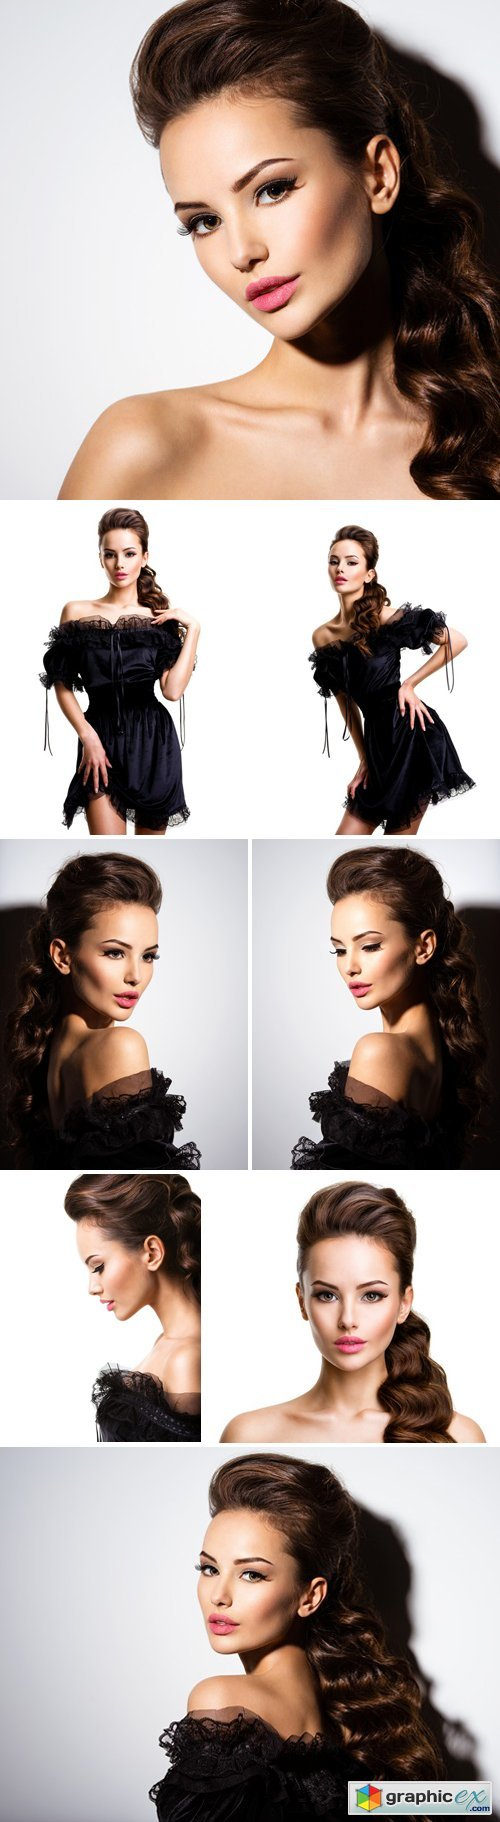 Stock Photos - Beautiful Face Of An Young Sexy Girl In Black Dress Posing At Studio On White Background